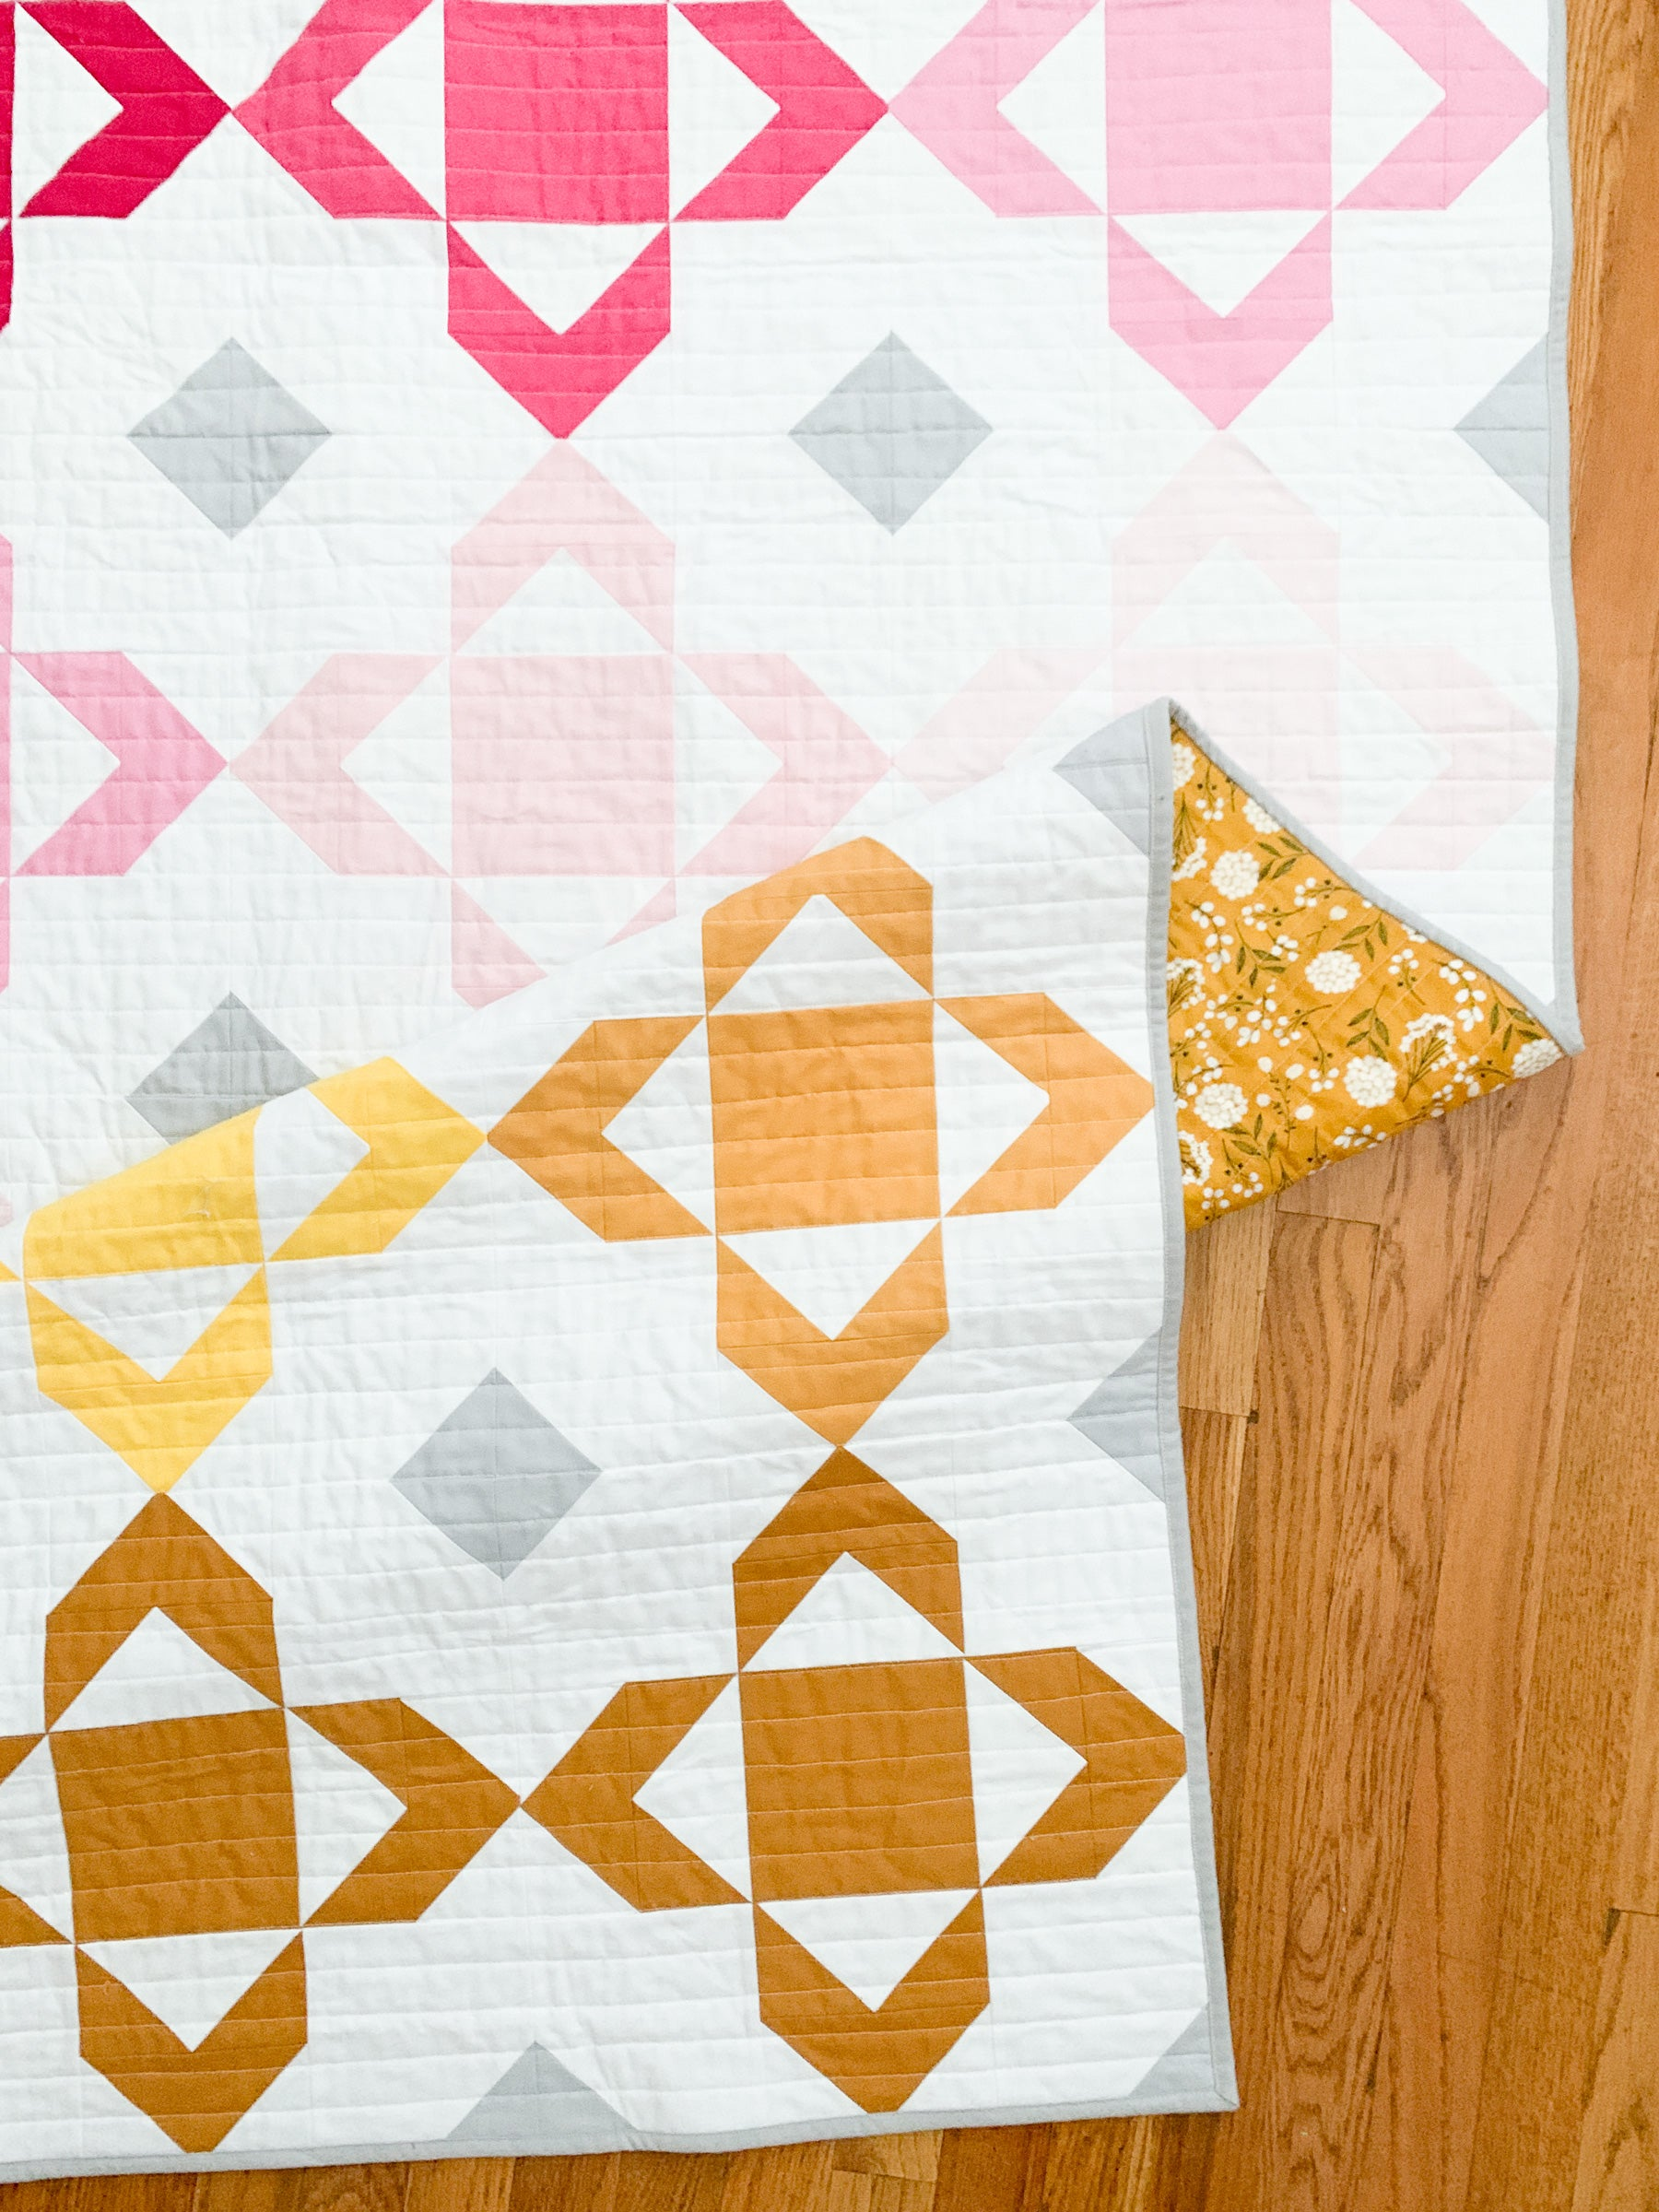 Garden Gems from Cotton and Joy in solids